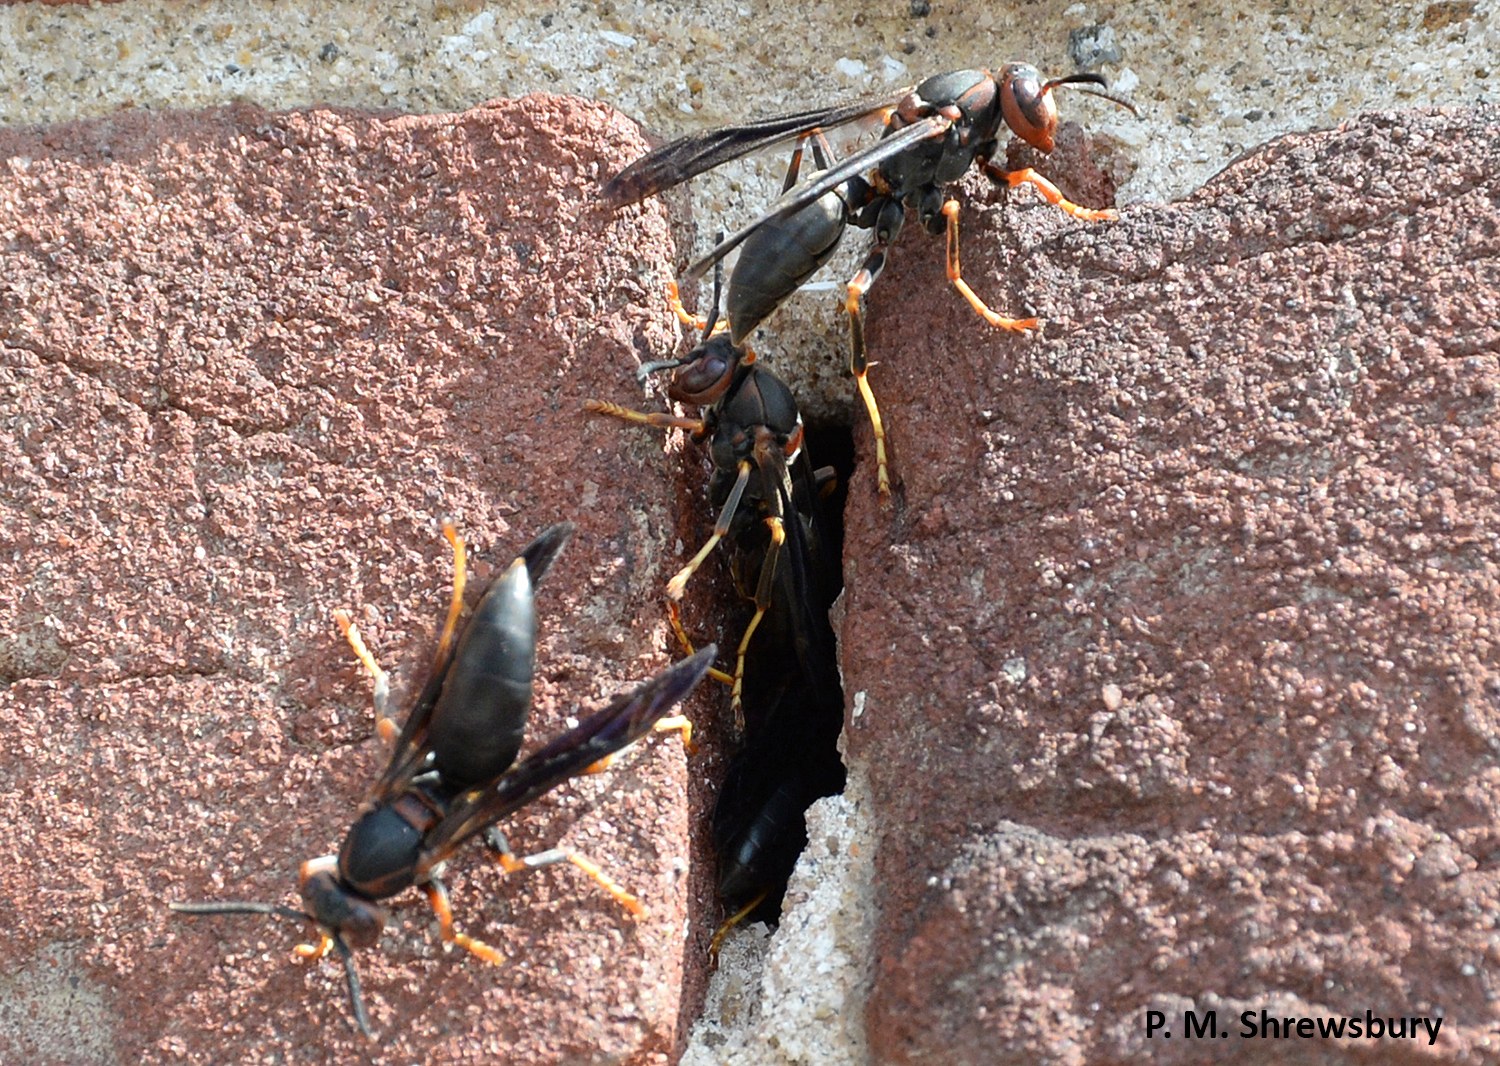 A break in a brick wall makes the perfect place for Polistes to build their nest. Photo credit: Paula Shrewsbury, UMD